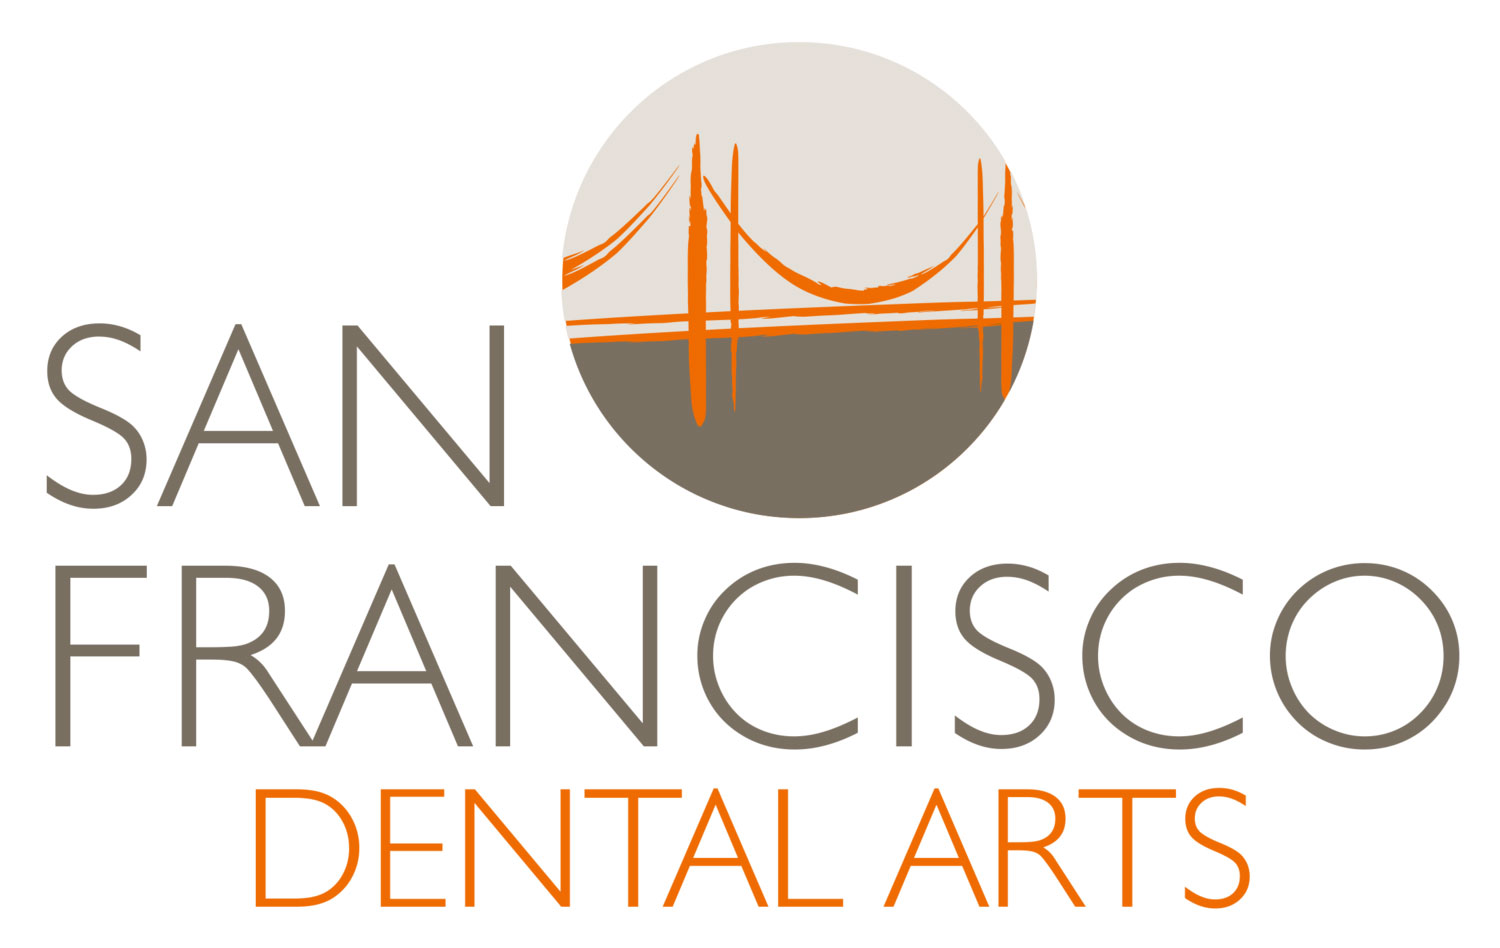 San Francisco Dental Arts in San Francisco, CA